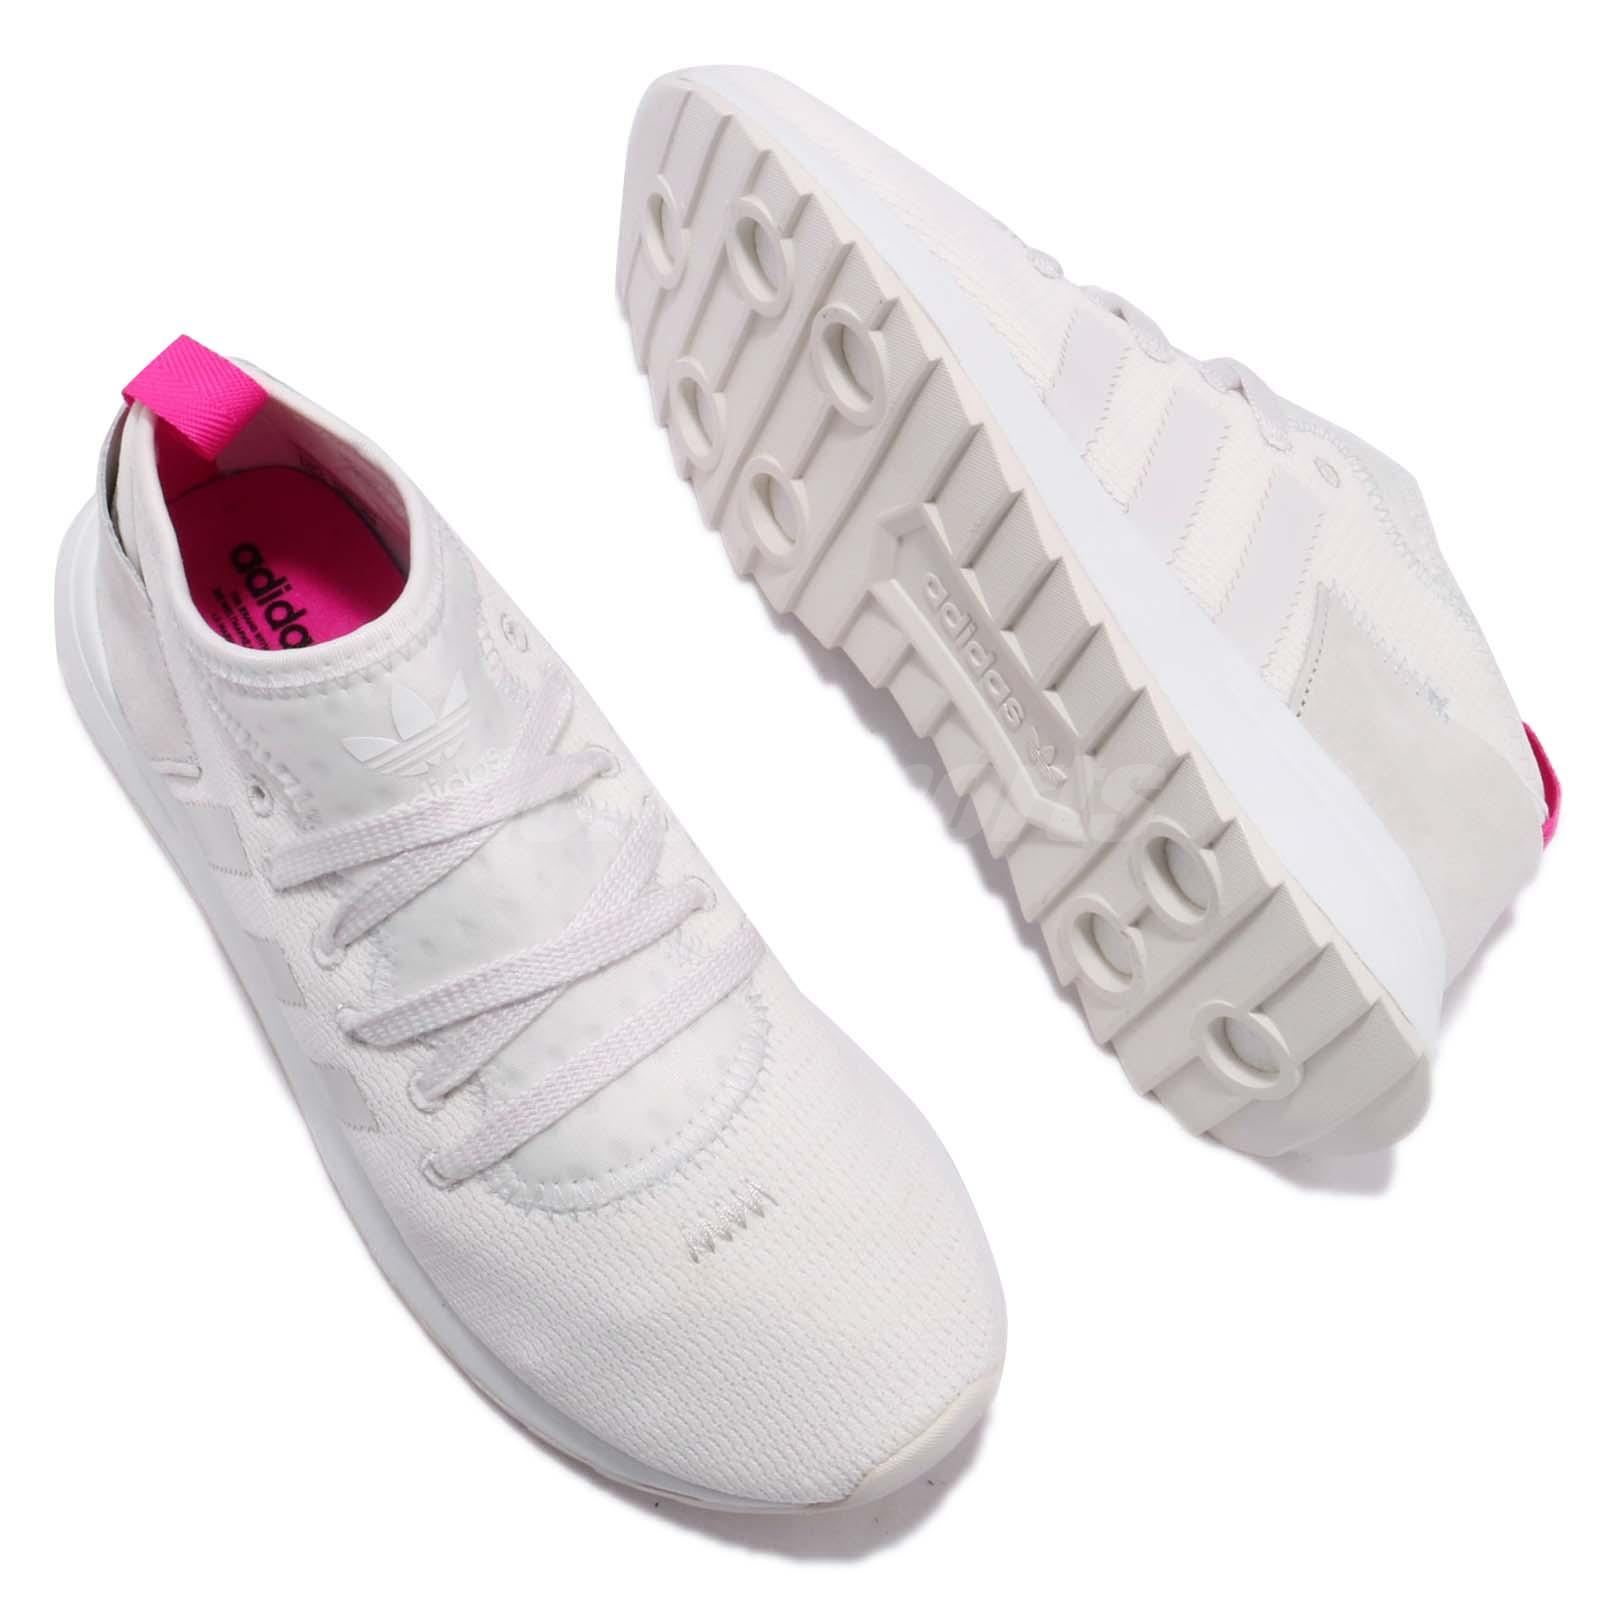 new style 35dbe 19f51 adidas Originals FLB Mid Flashback White Pink Women Shoes Sneakers ...